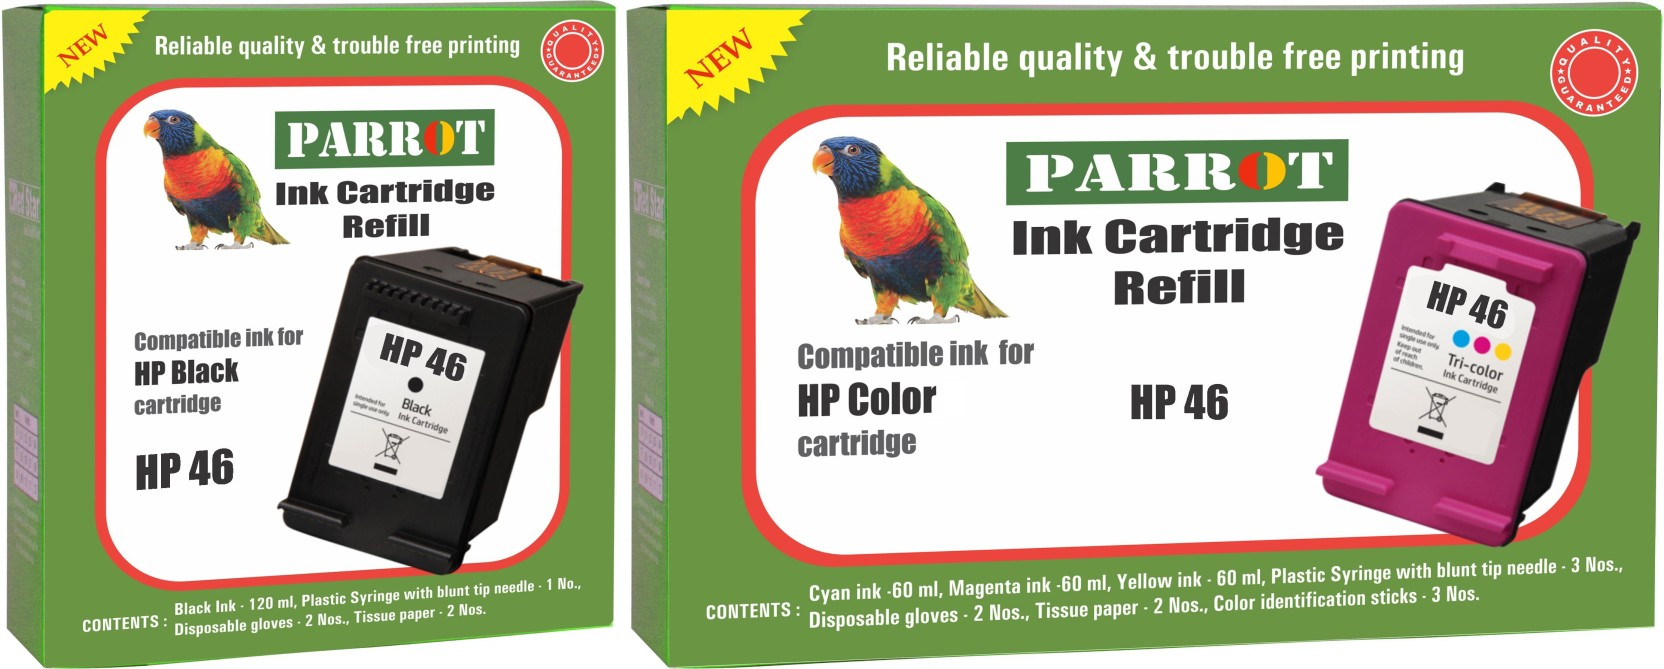 Parrot ink cartridge refill for HP 46 black and HP 46 color Combo pack Multi Color. ADD TO CART